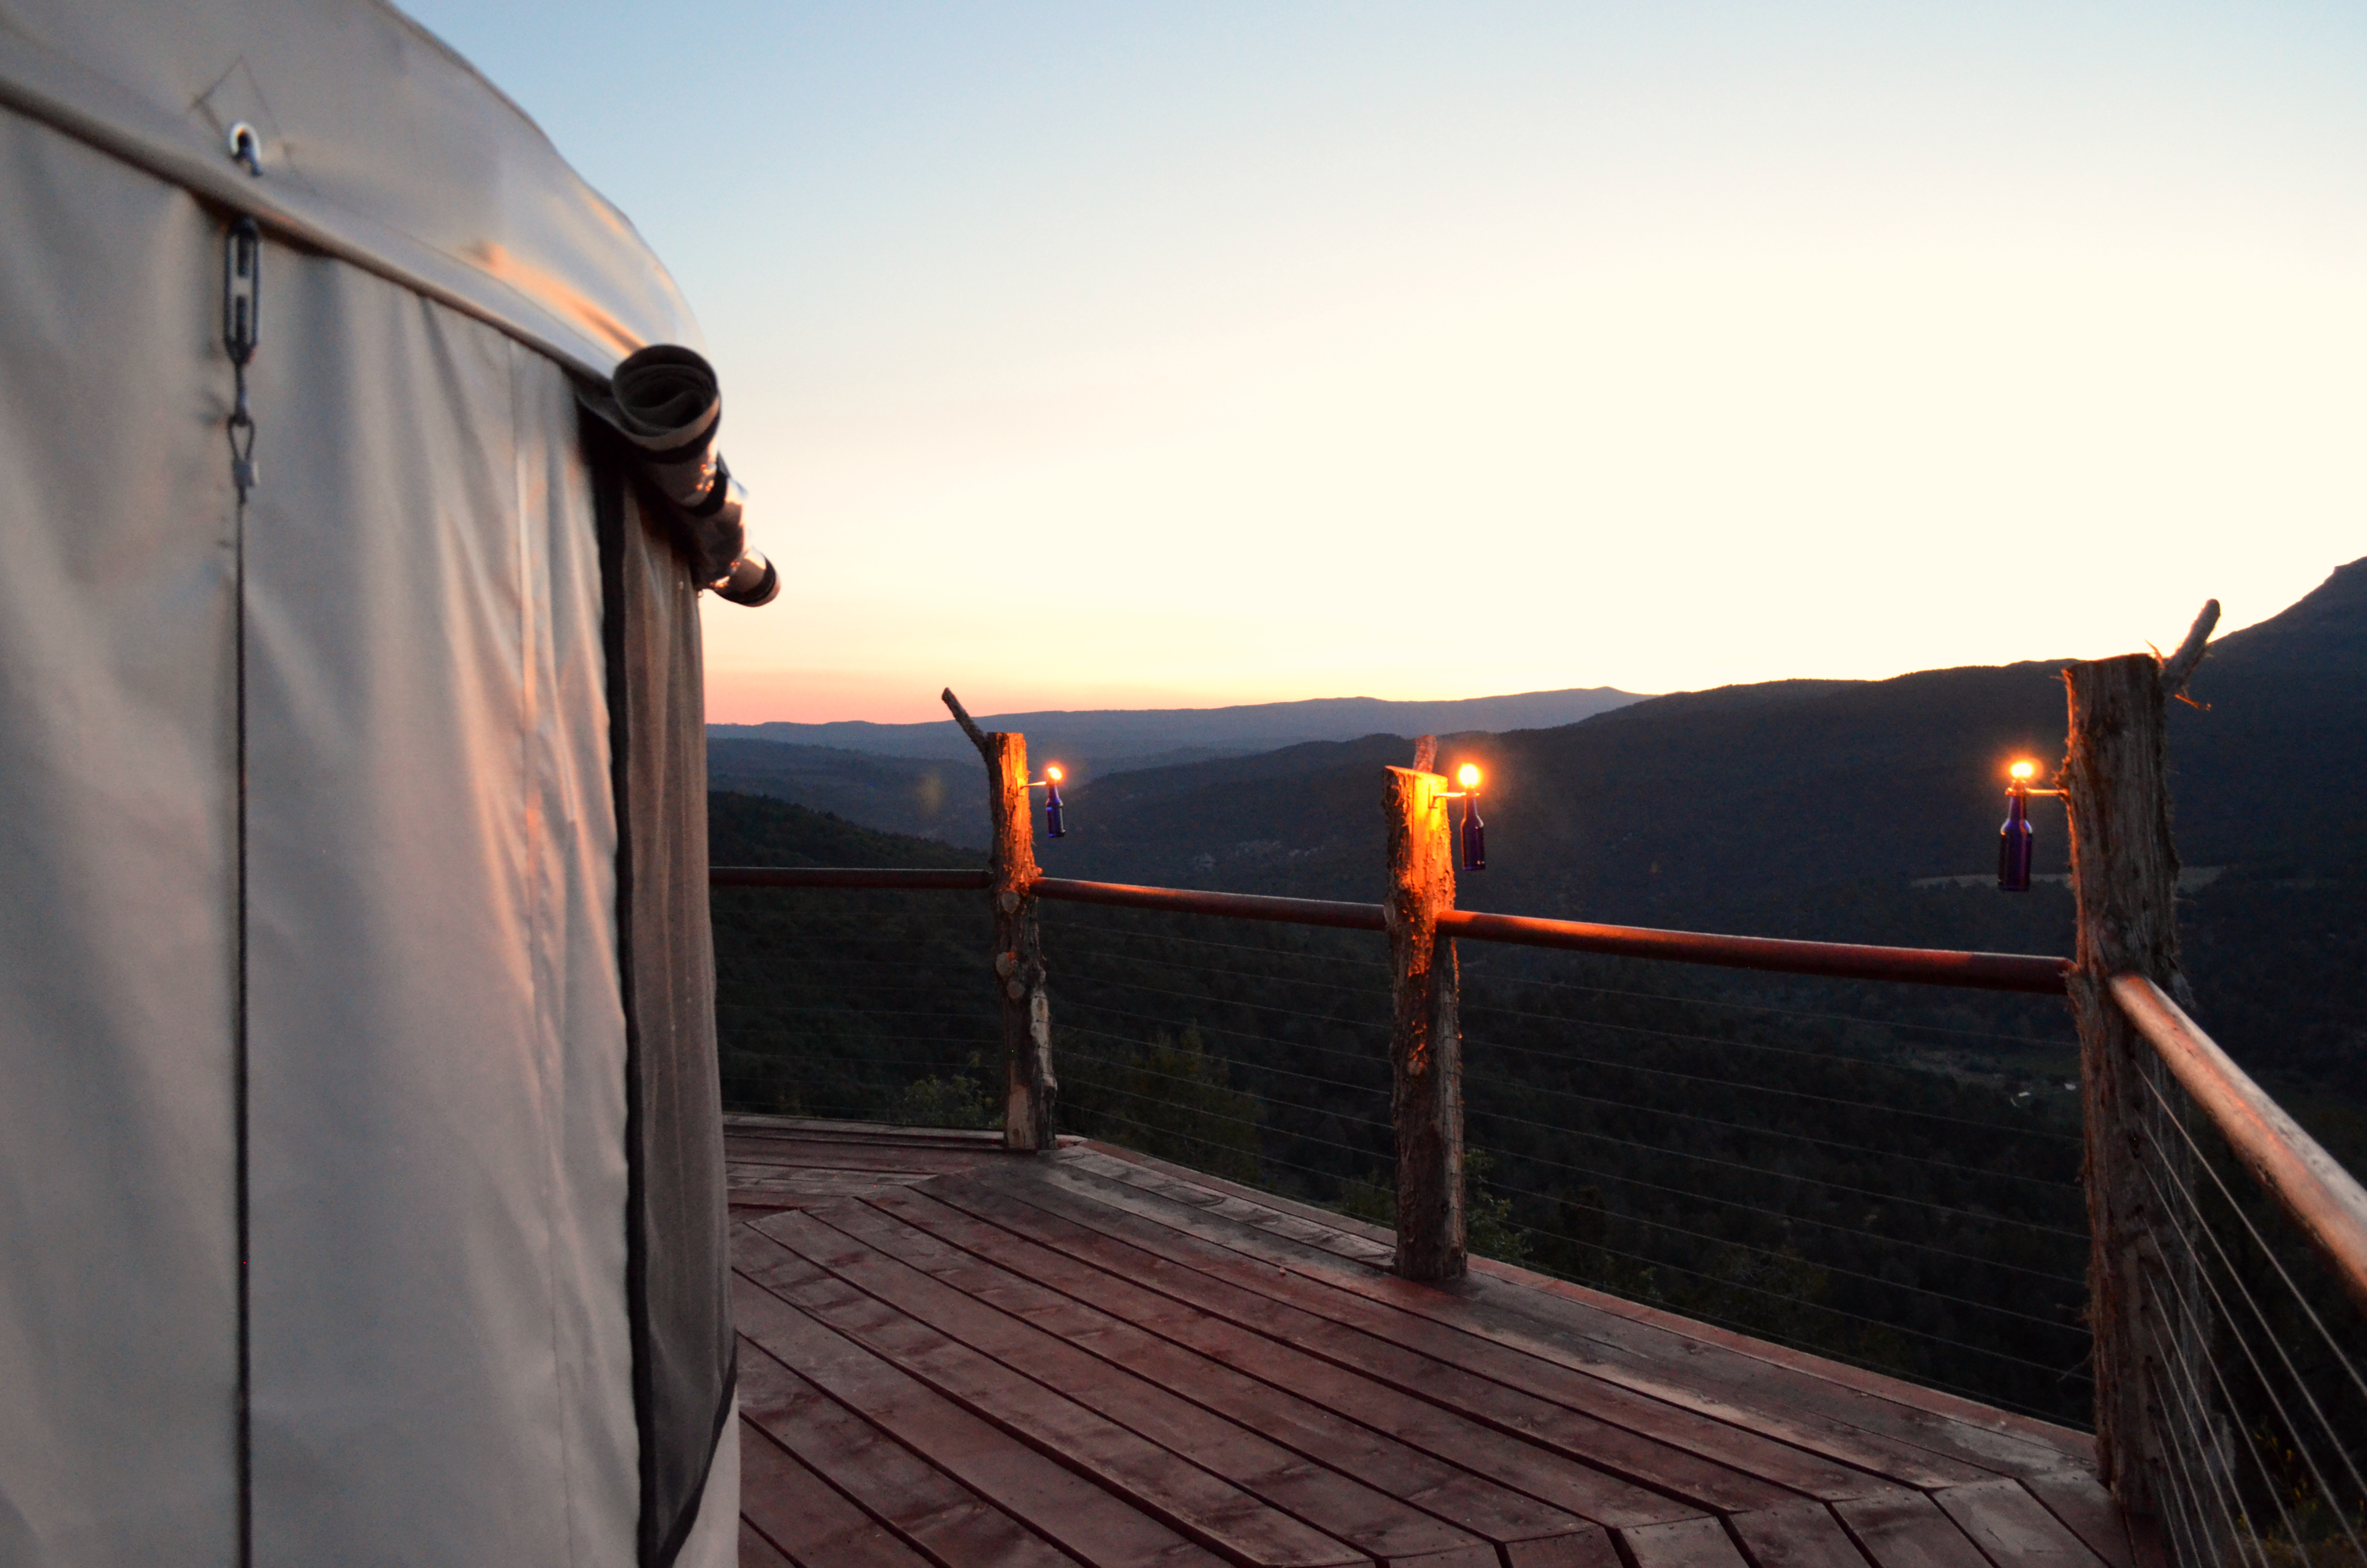 Dusk at the Yurt